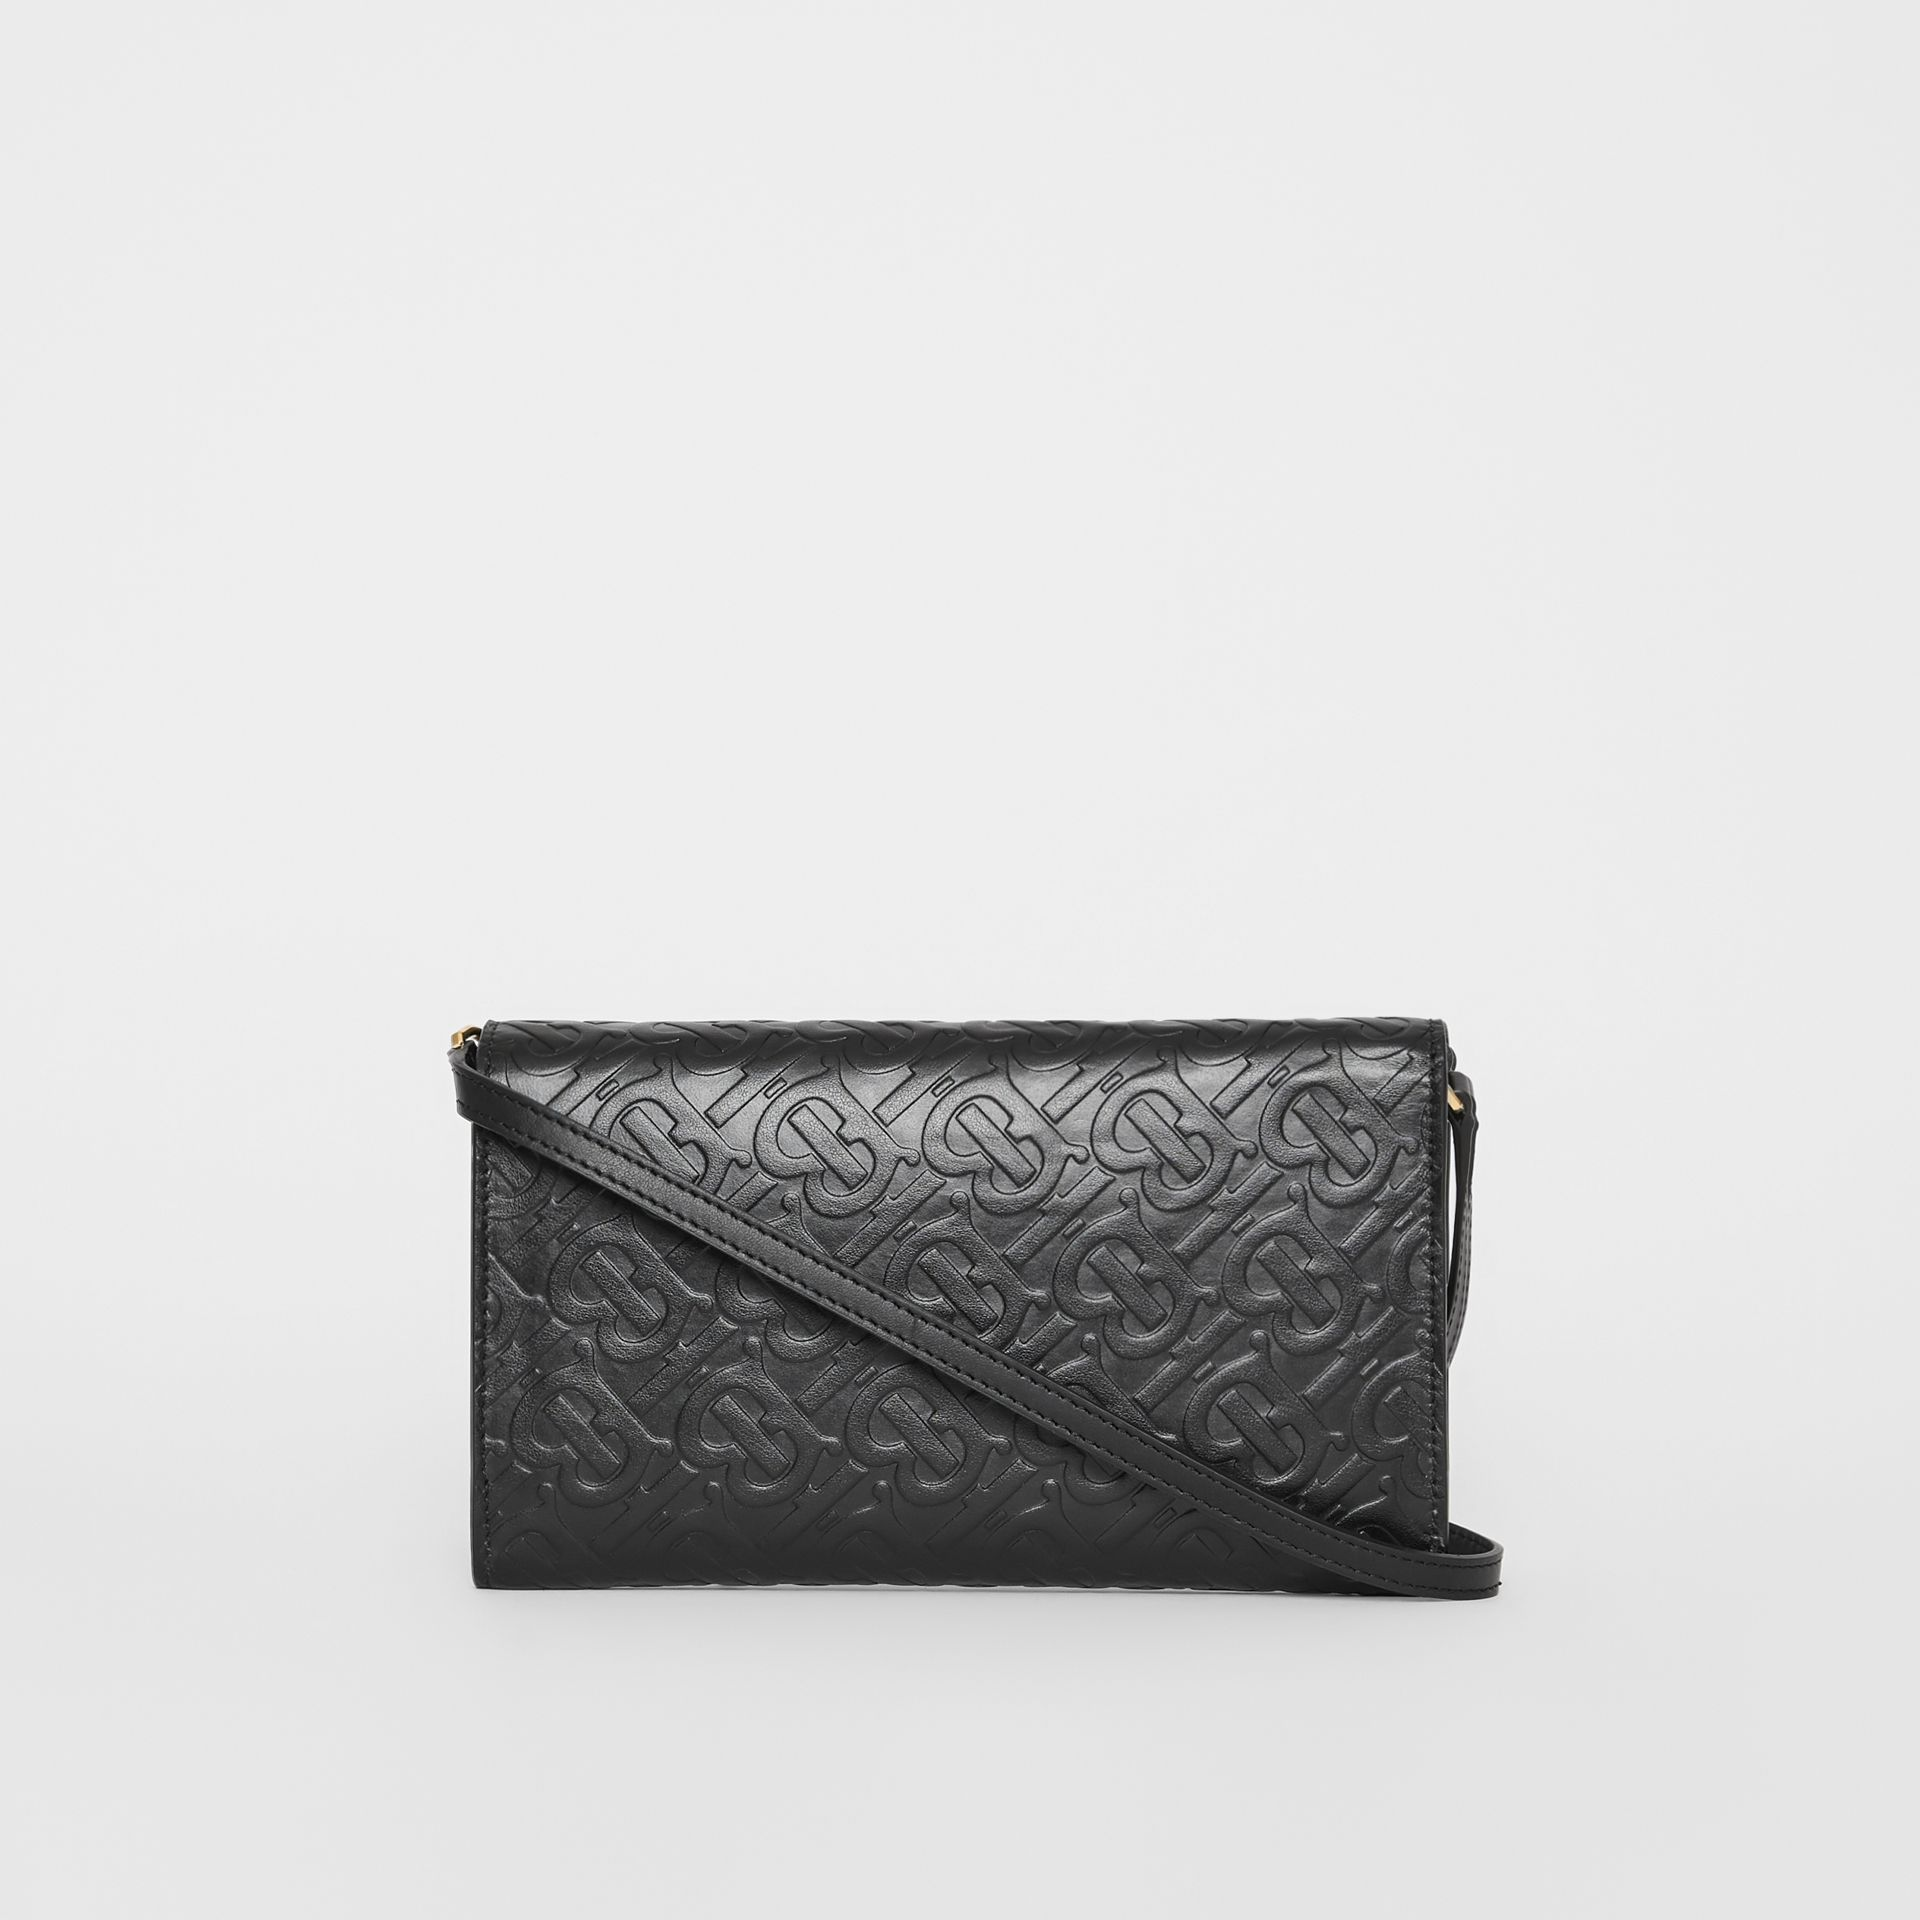 Monogram Leather Wallet with Detachable Strap in Black - Women | Burberry United States - gallery image 7